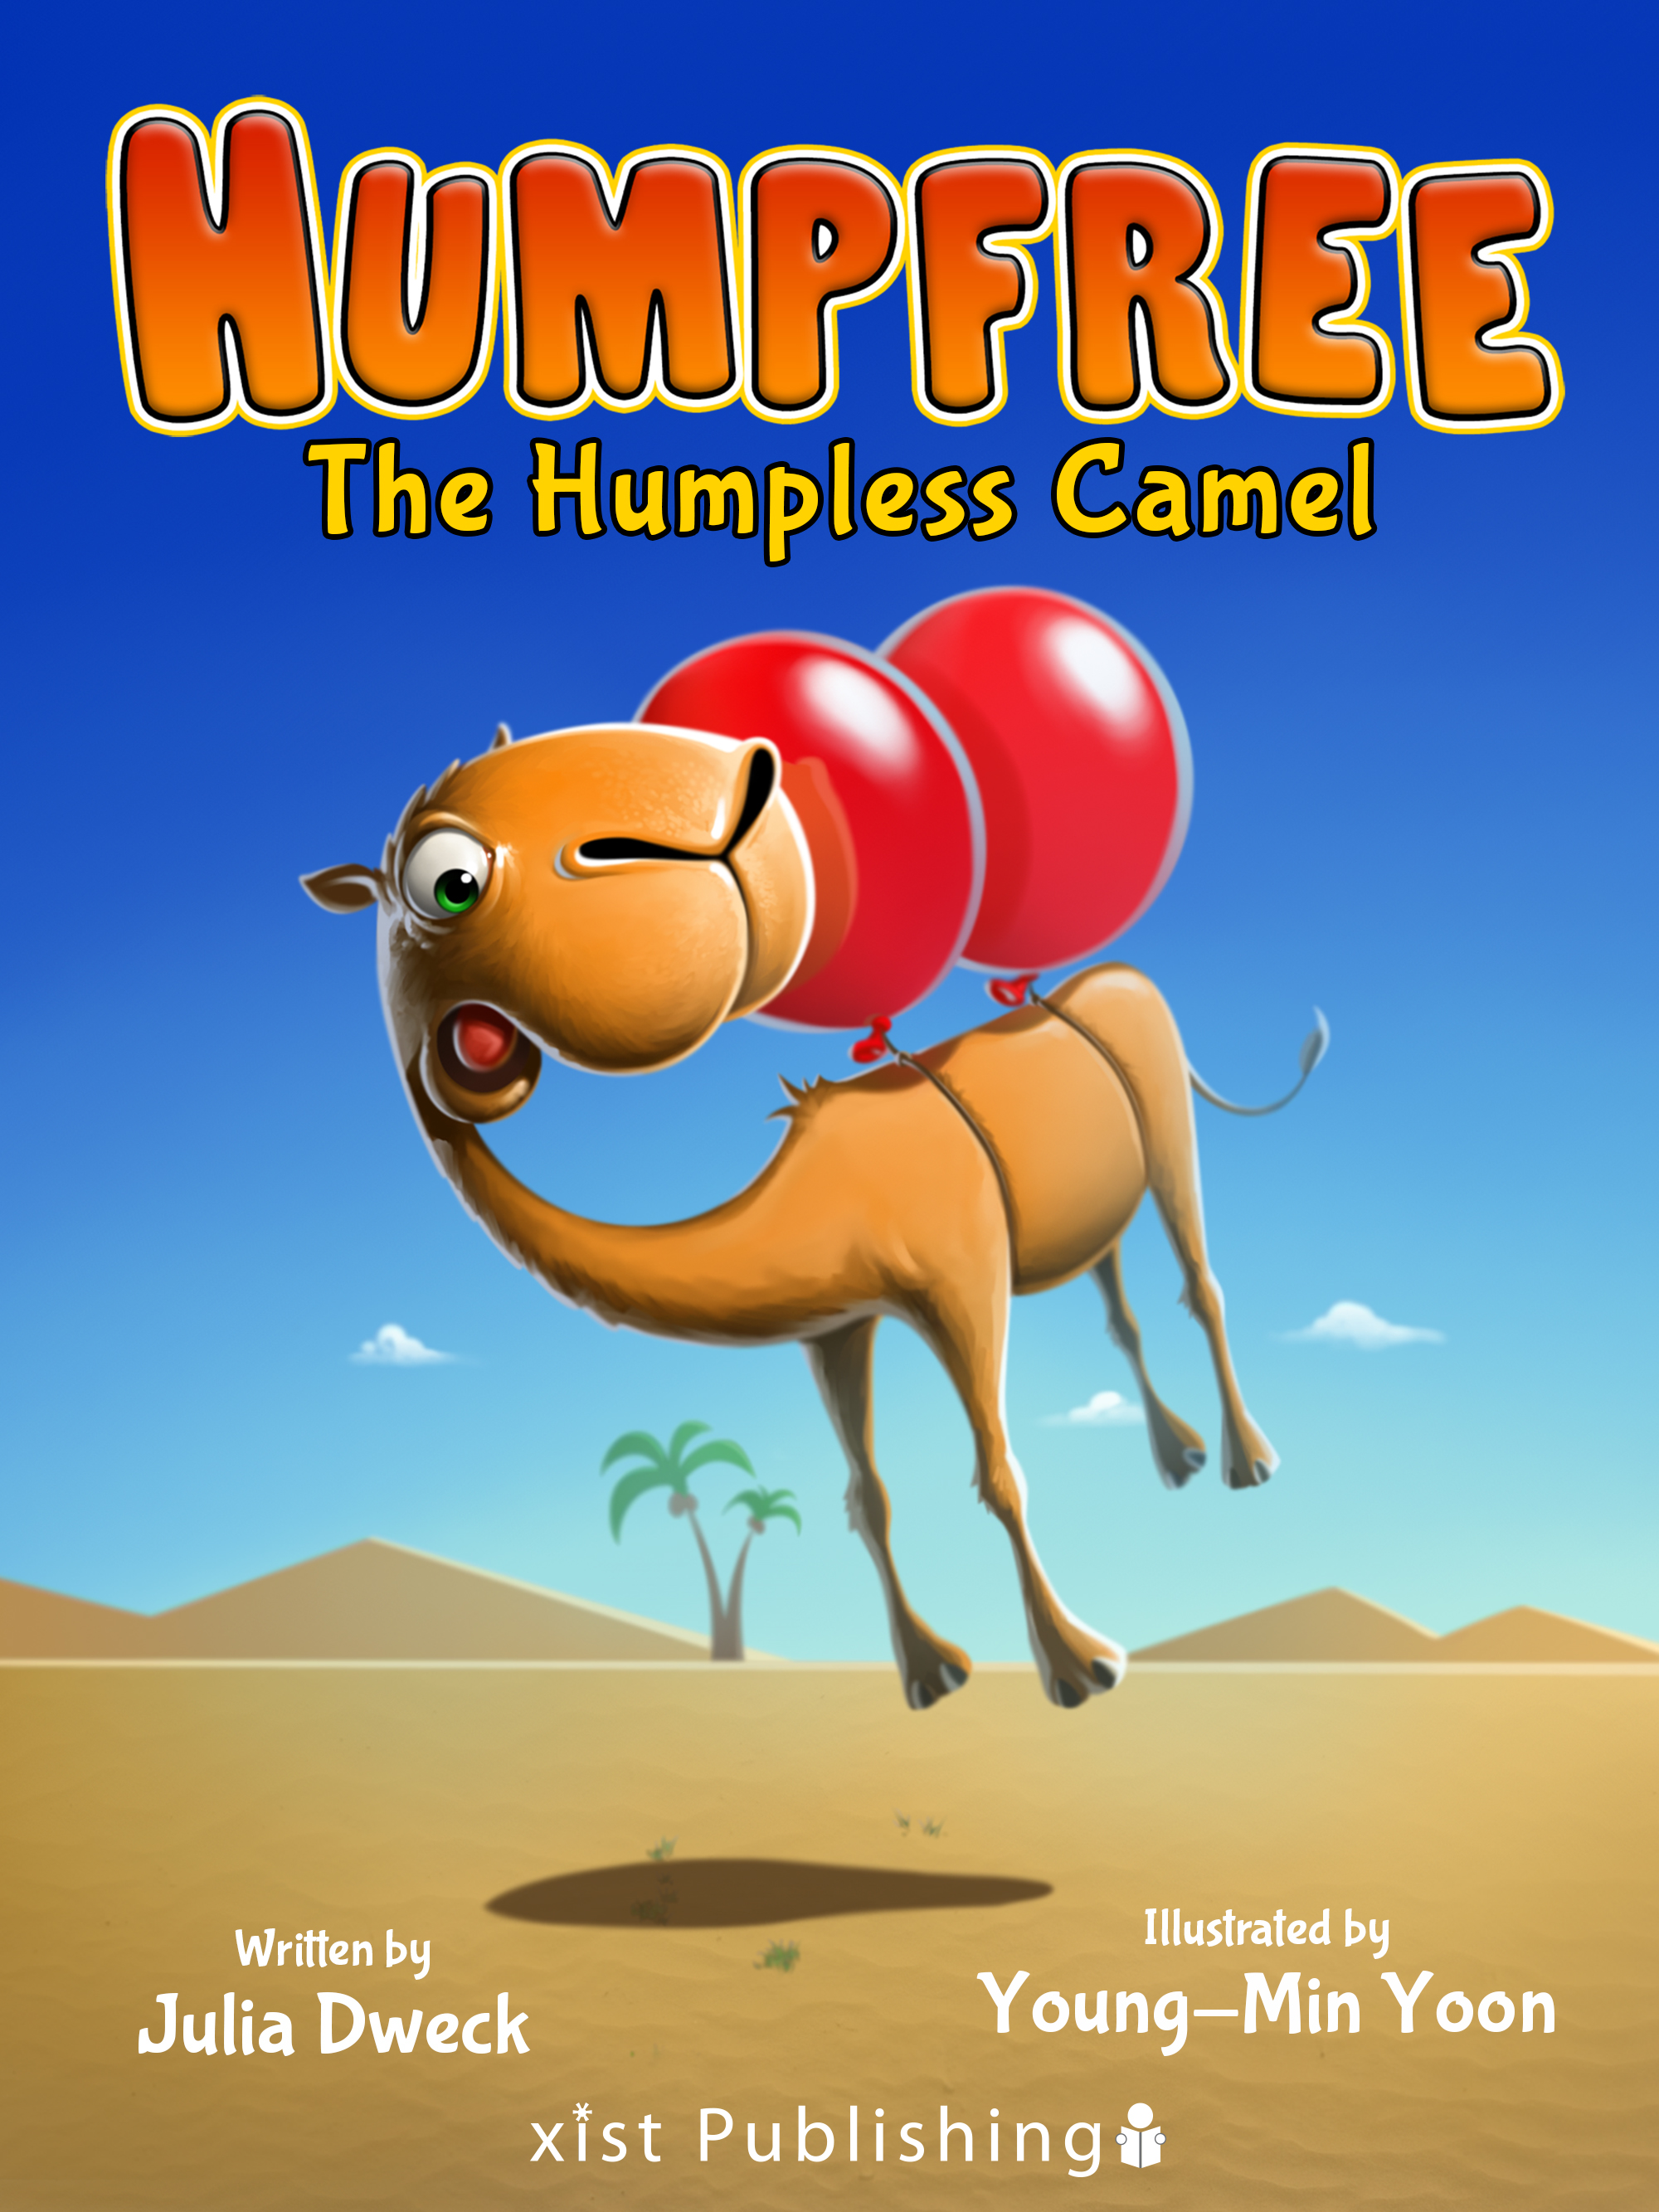 Humpfree the Humpless Camel Review